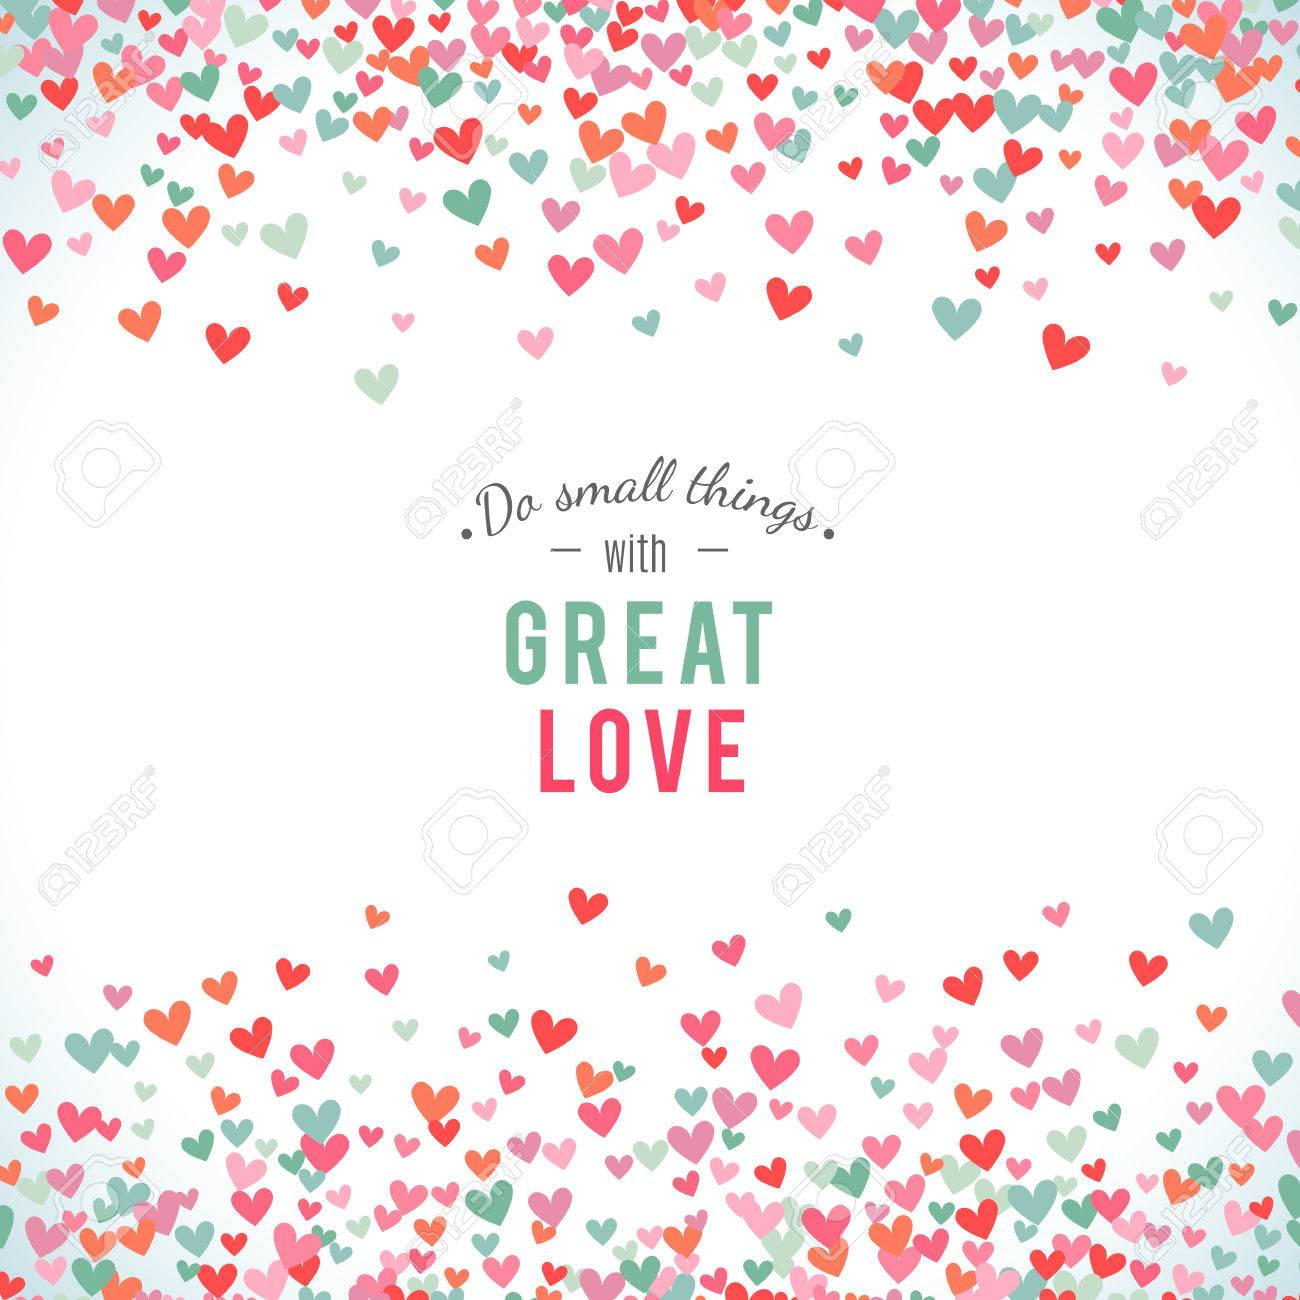 Romantic pink and blue heart background. Vector illustration for holiday design. Many flying hearts on white background. For wedding card, valentine day greetings, lovely frame. - 51850075